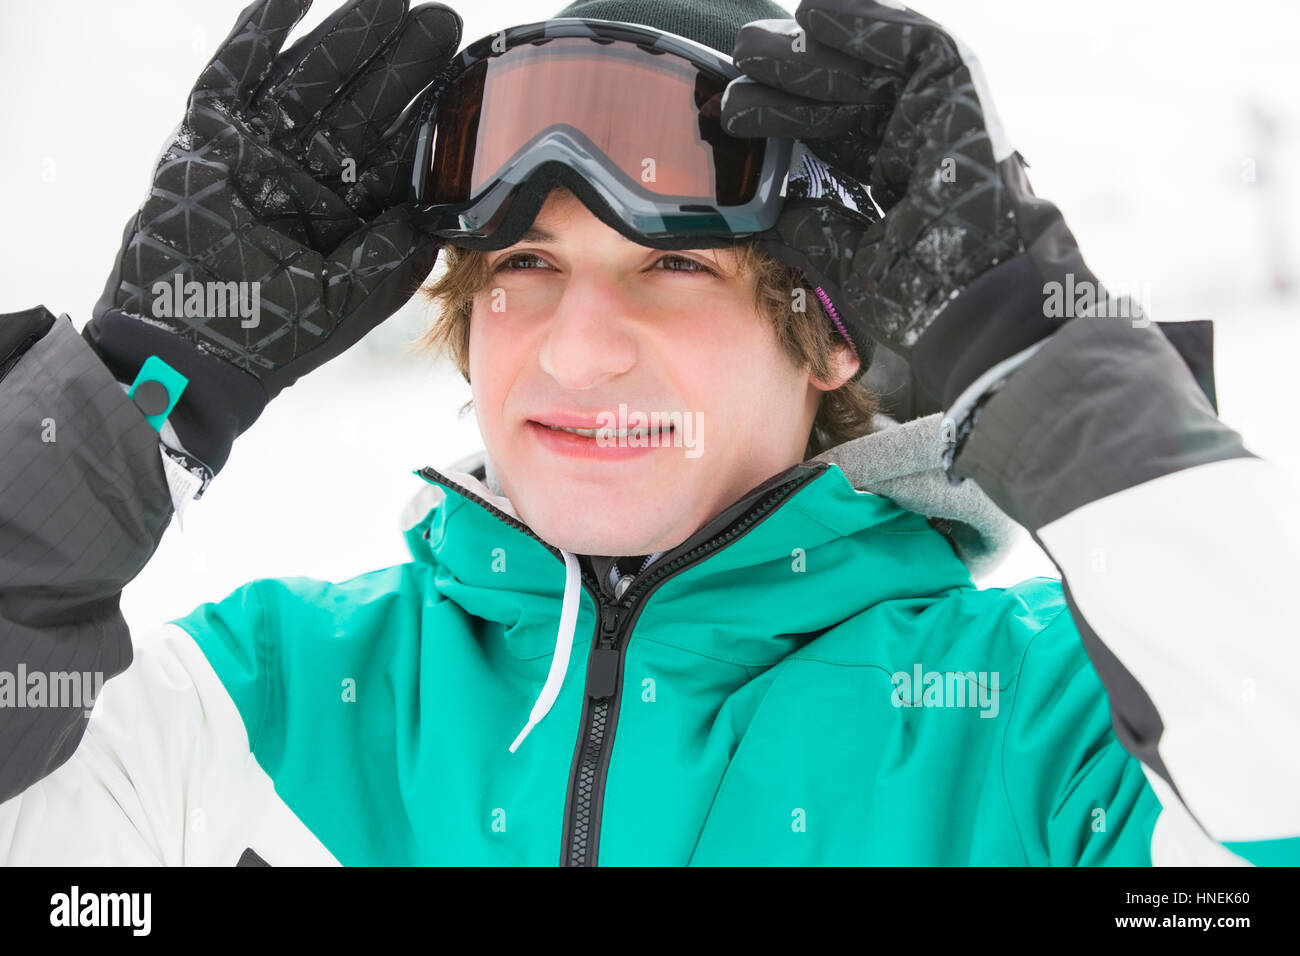 Handsome young man wearing ski goggles outdoors - Stock Image